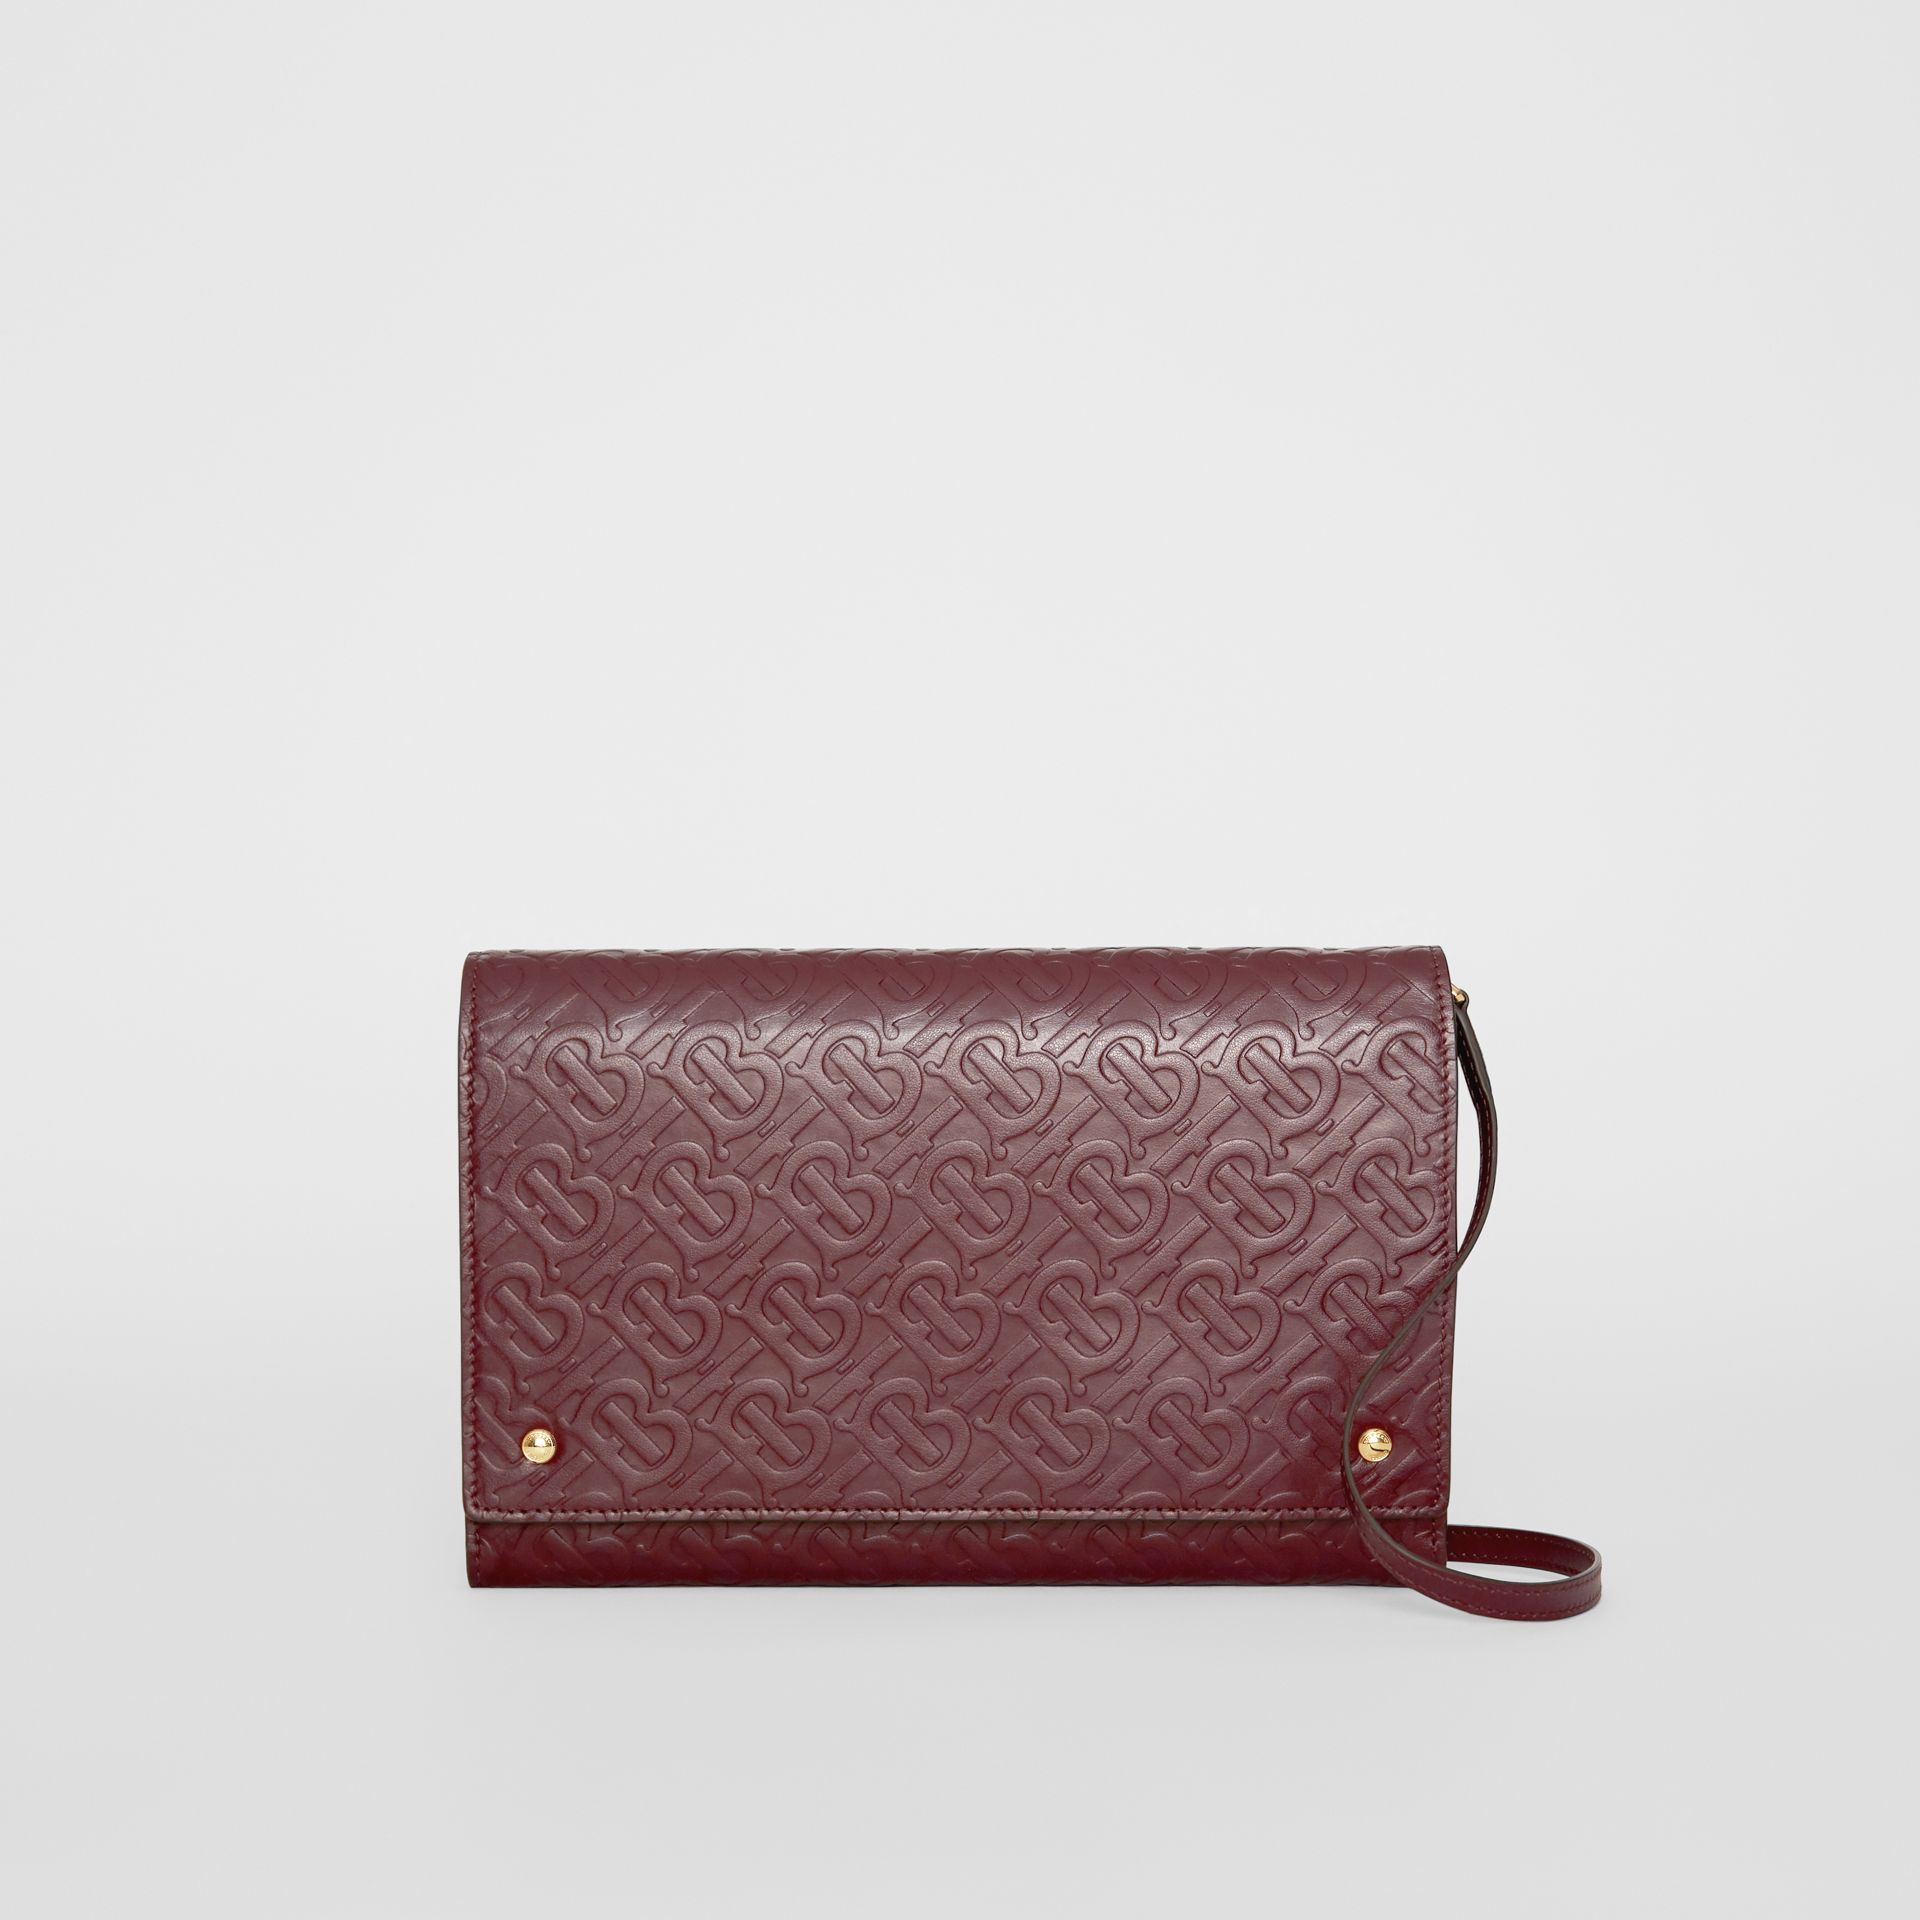 Monogram Leather Bag with Detachable Strap in Oxblood - Women | Burberry Singapore - gallery image 0